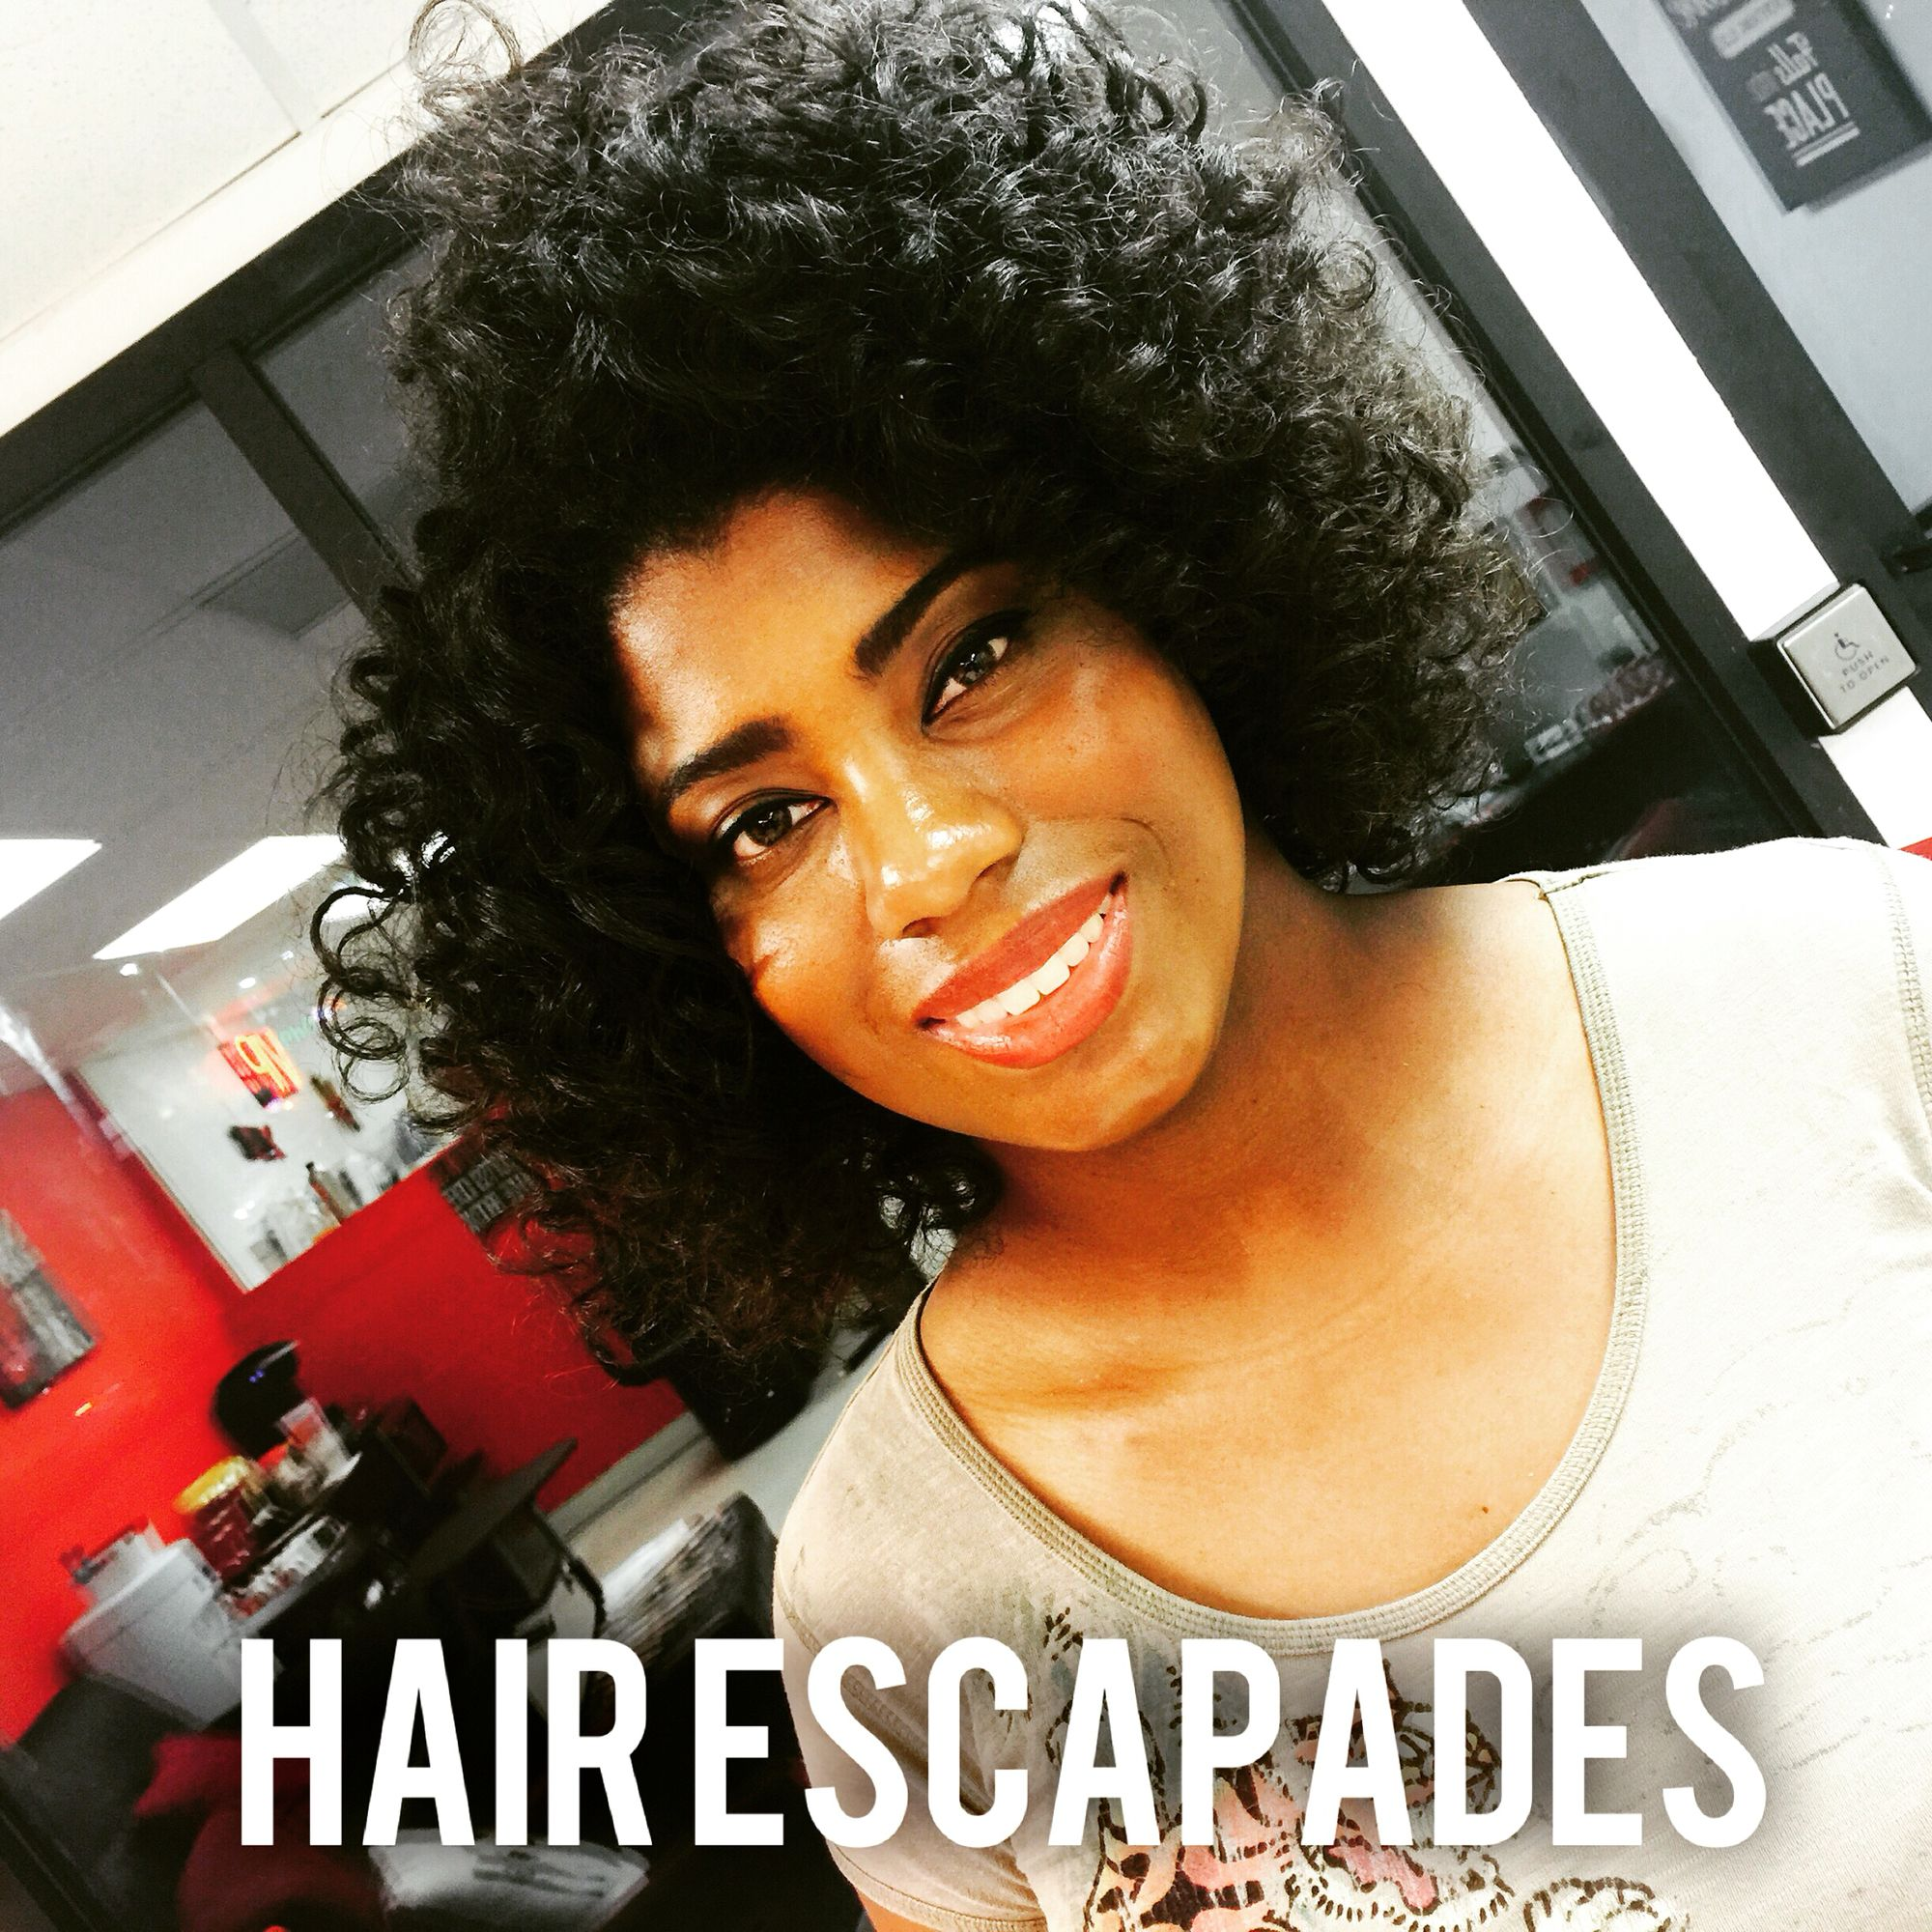 Haircut styles afro my client requested a curlyafro style and her wish was granted at